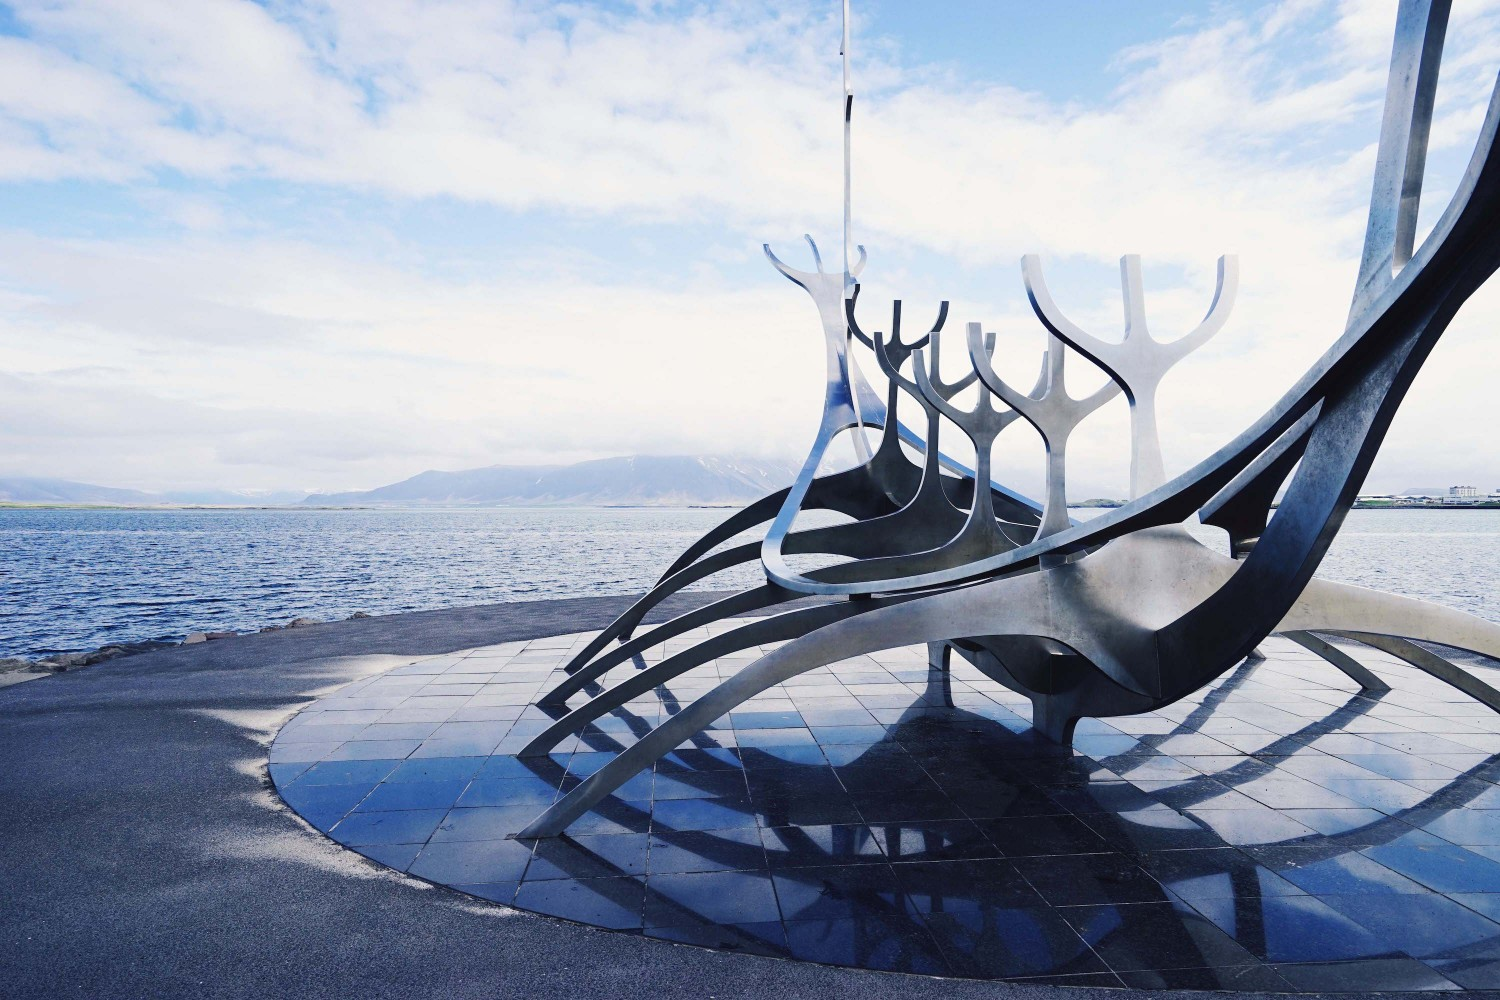 sun-voyager-iceland-dante-vincent-photography-134